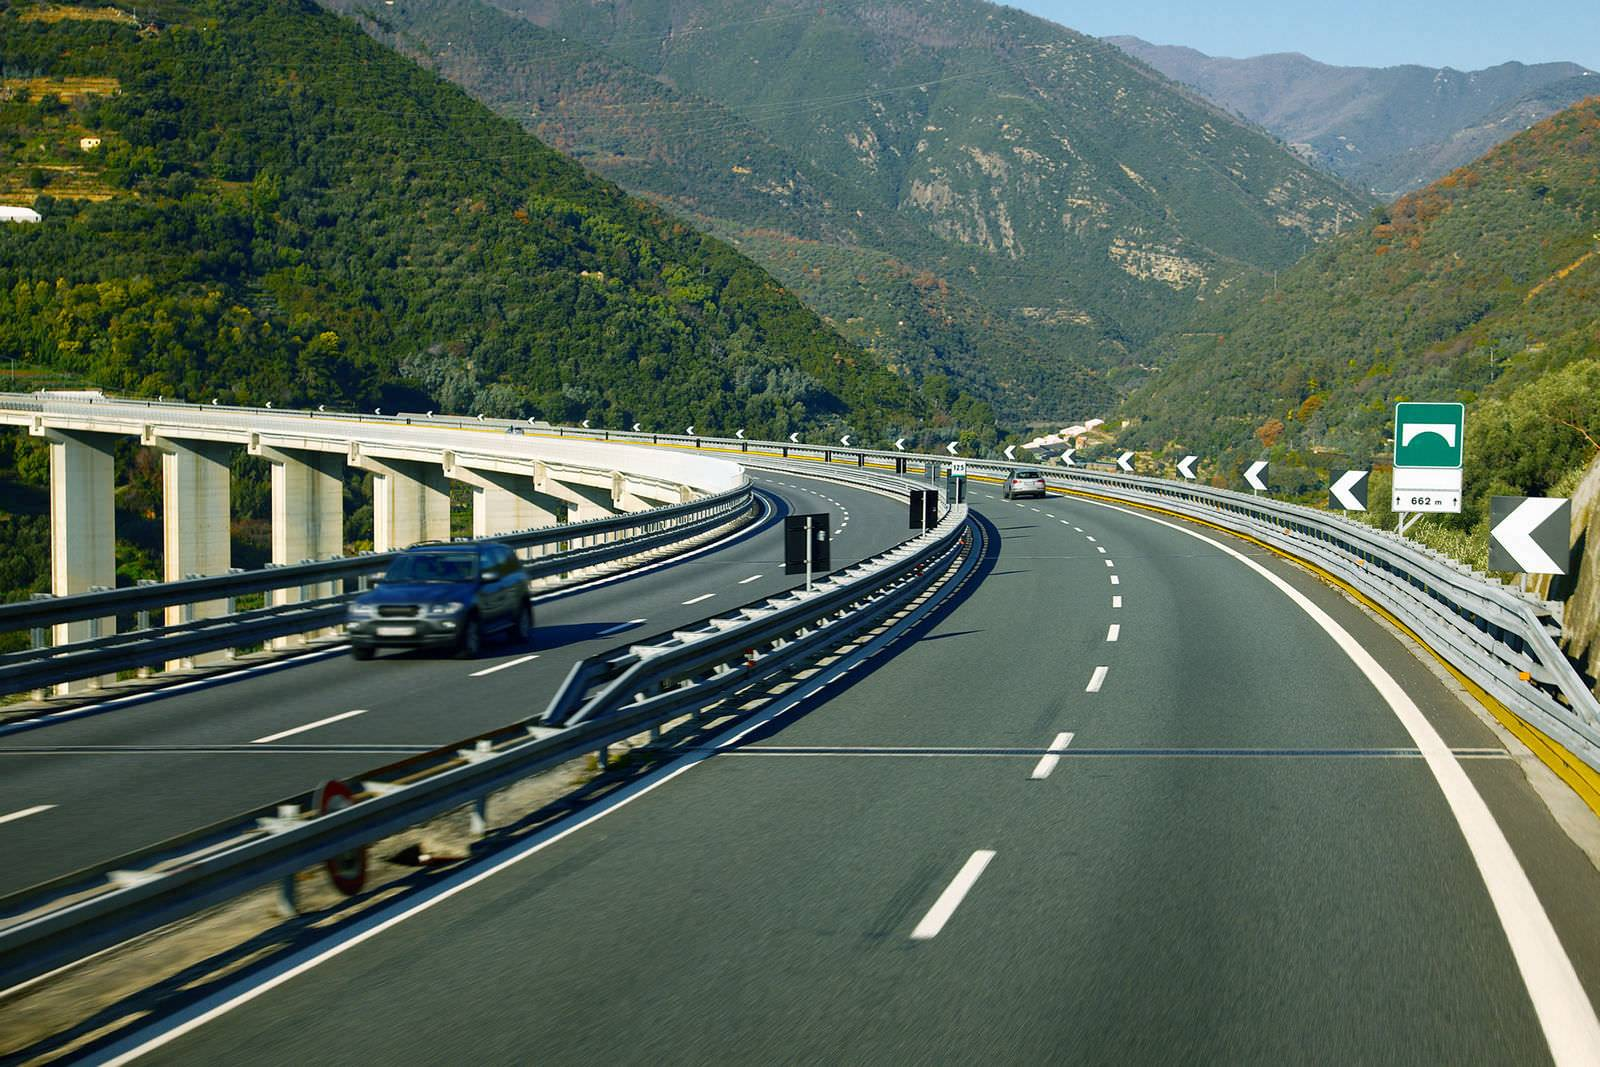 Roads, highways, viaducts, bridge and infrastructure related to transport